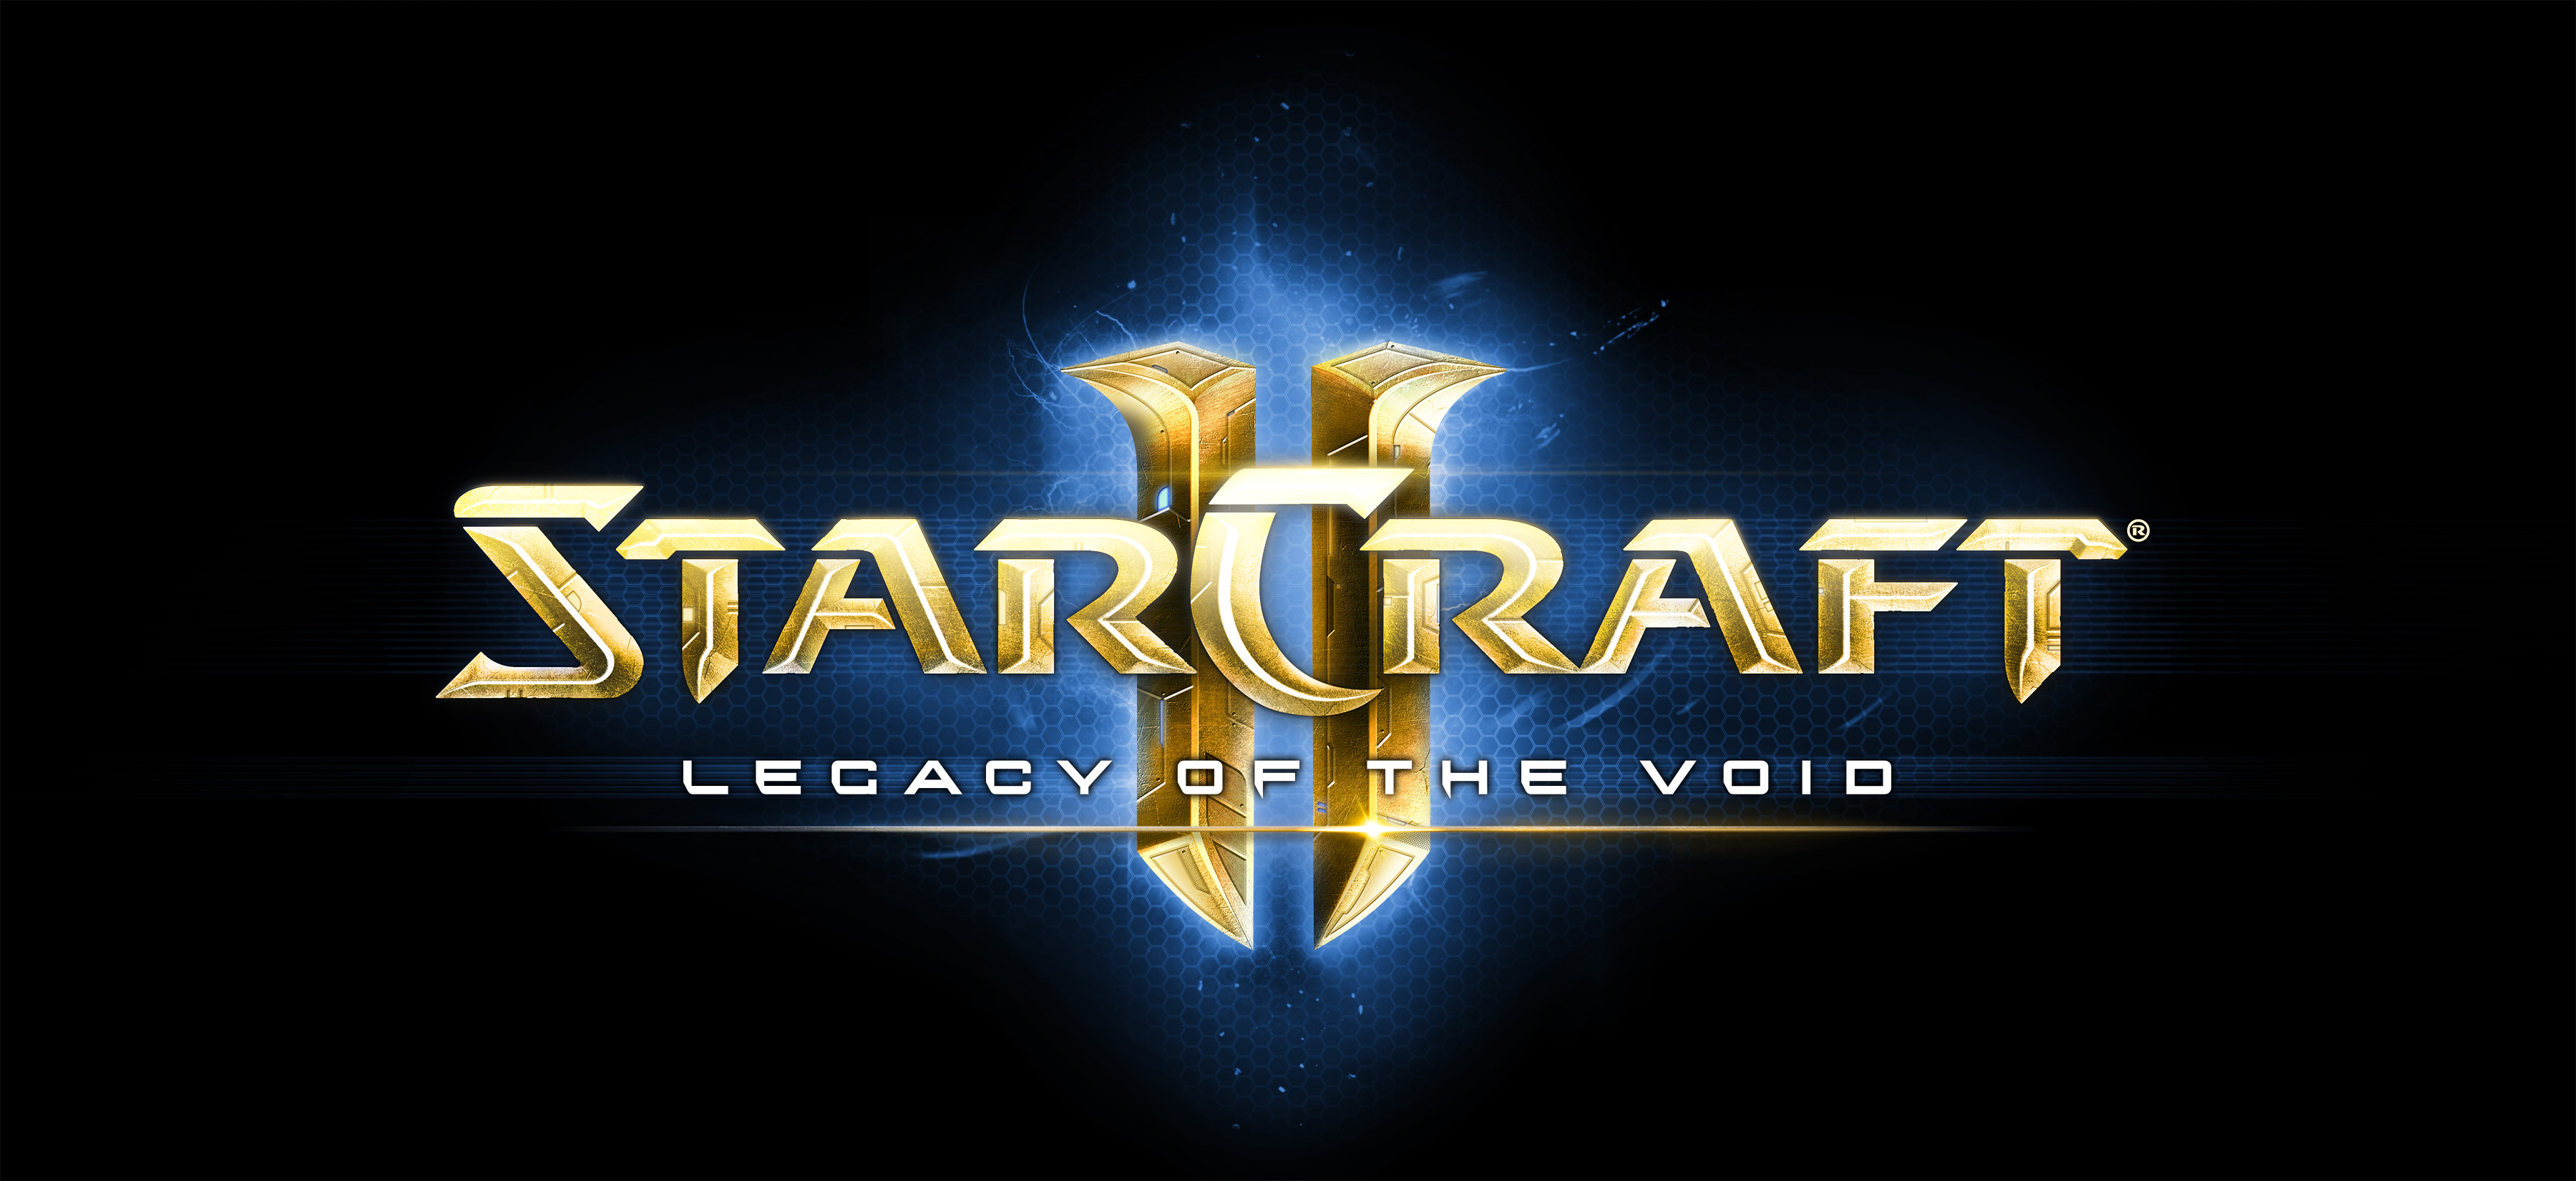 Starcraft II: Legacy of the Void Editions Announced; Pre-order bonuses detailed